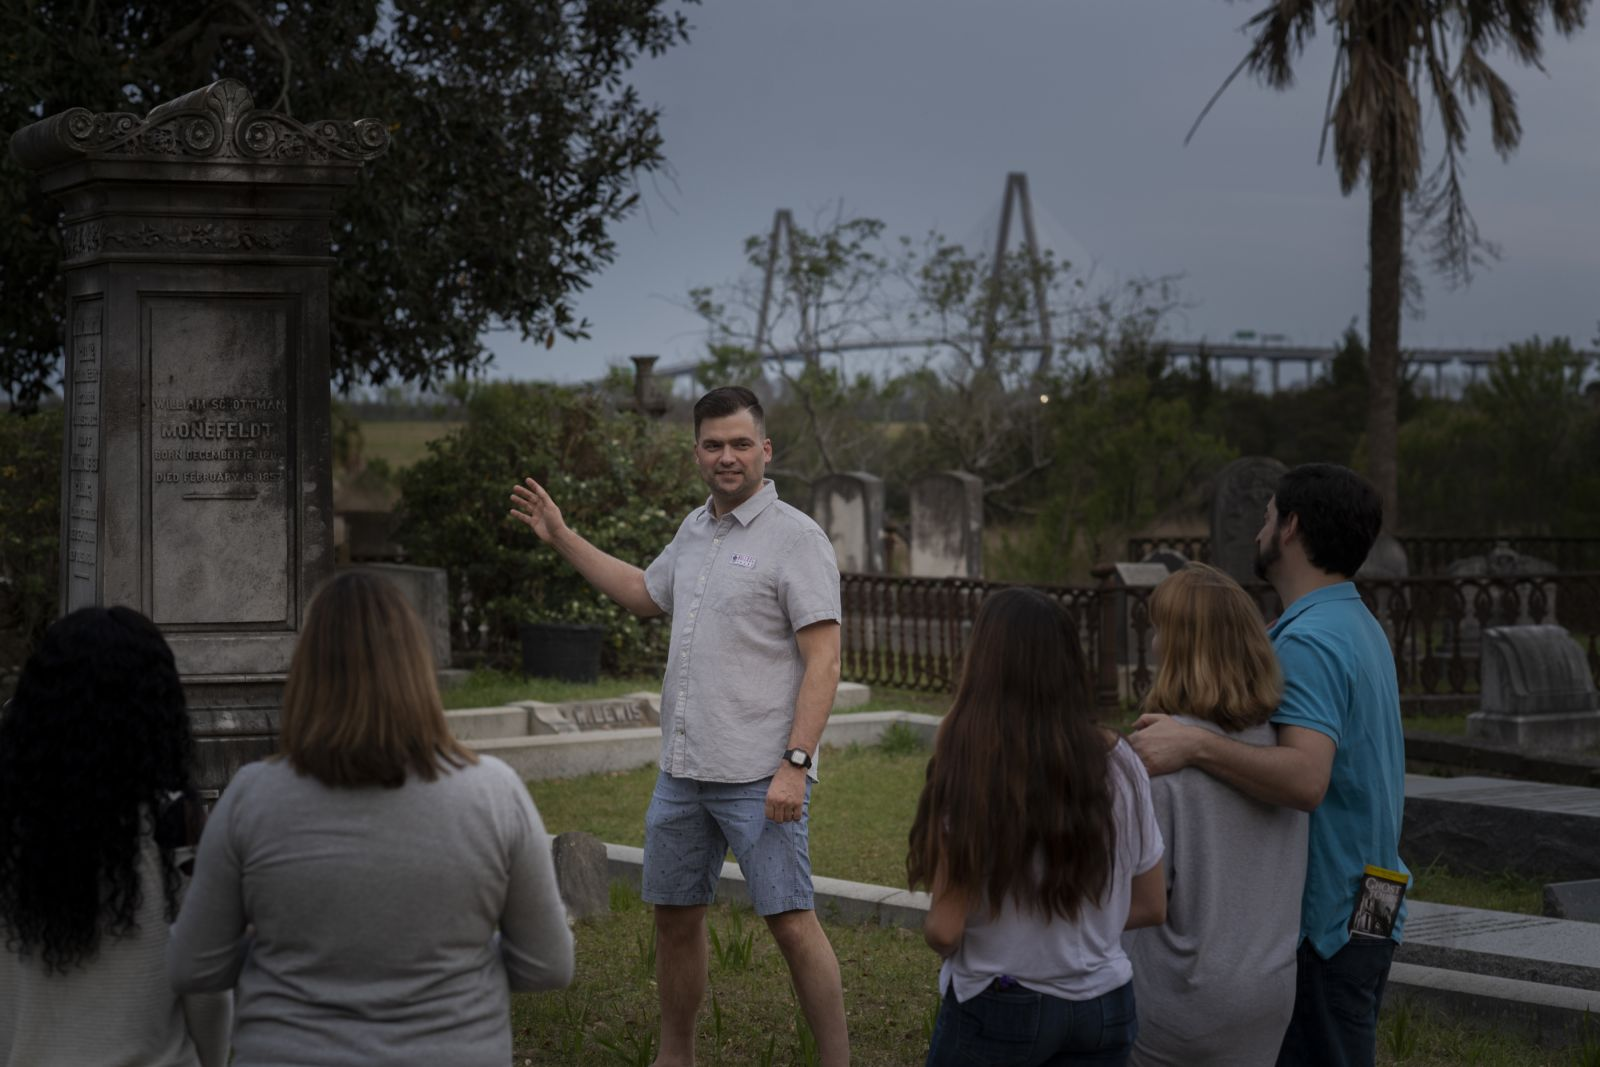 Bulldog Tours is launching the first official walking tour of Magnolia Cemetery this week. Charleston's oldest public cemetery had previously been off limits to commercial tour companies. (Photo/Provided)